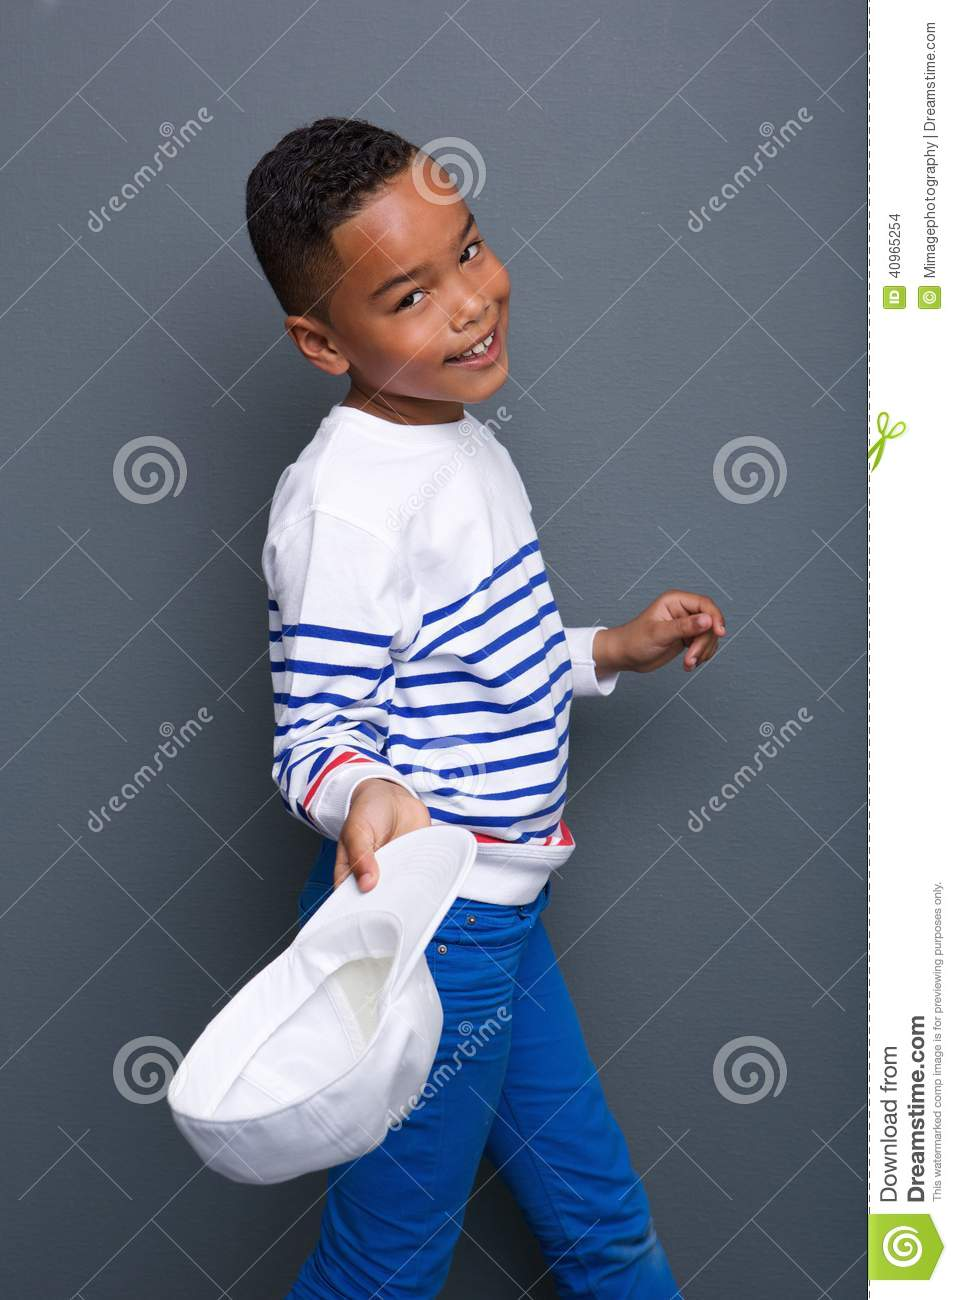 Cute Little Black Boy Smiling And Holding Hat Stock Photo 40965254 ... 7118c31413da